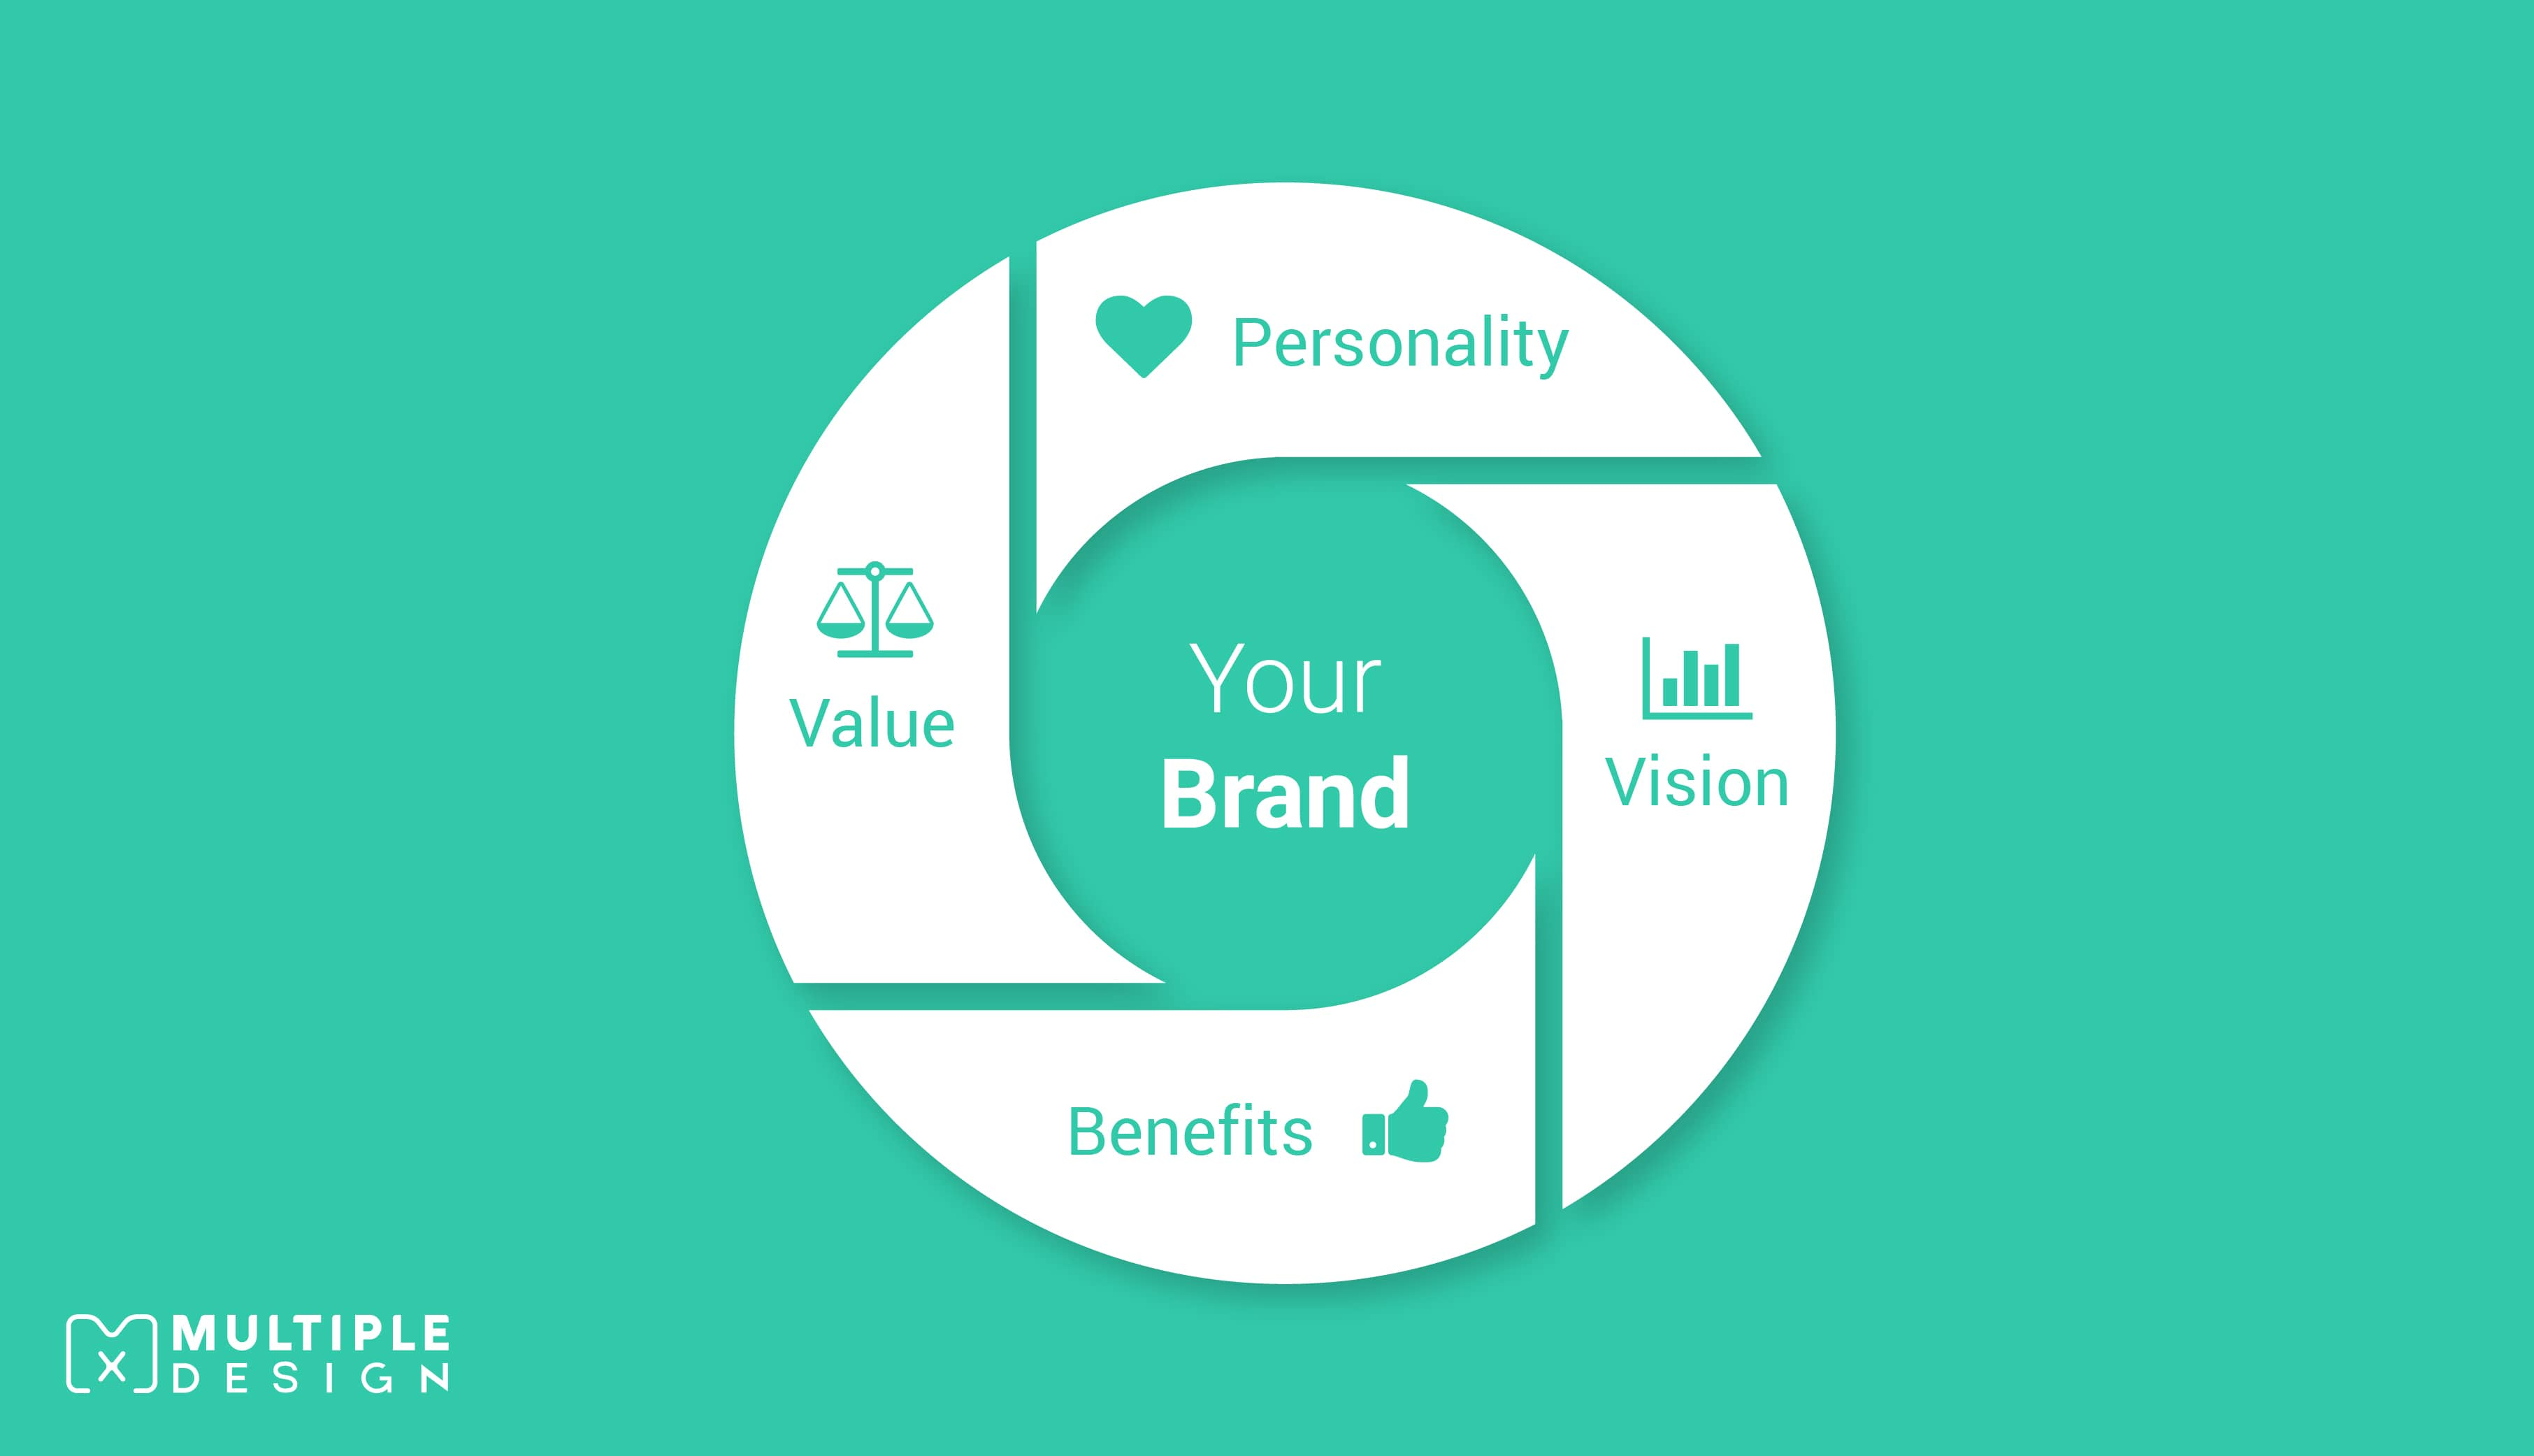 Your Brand - Personality, Vision, Value, Beneifits